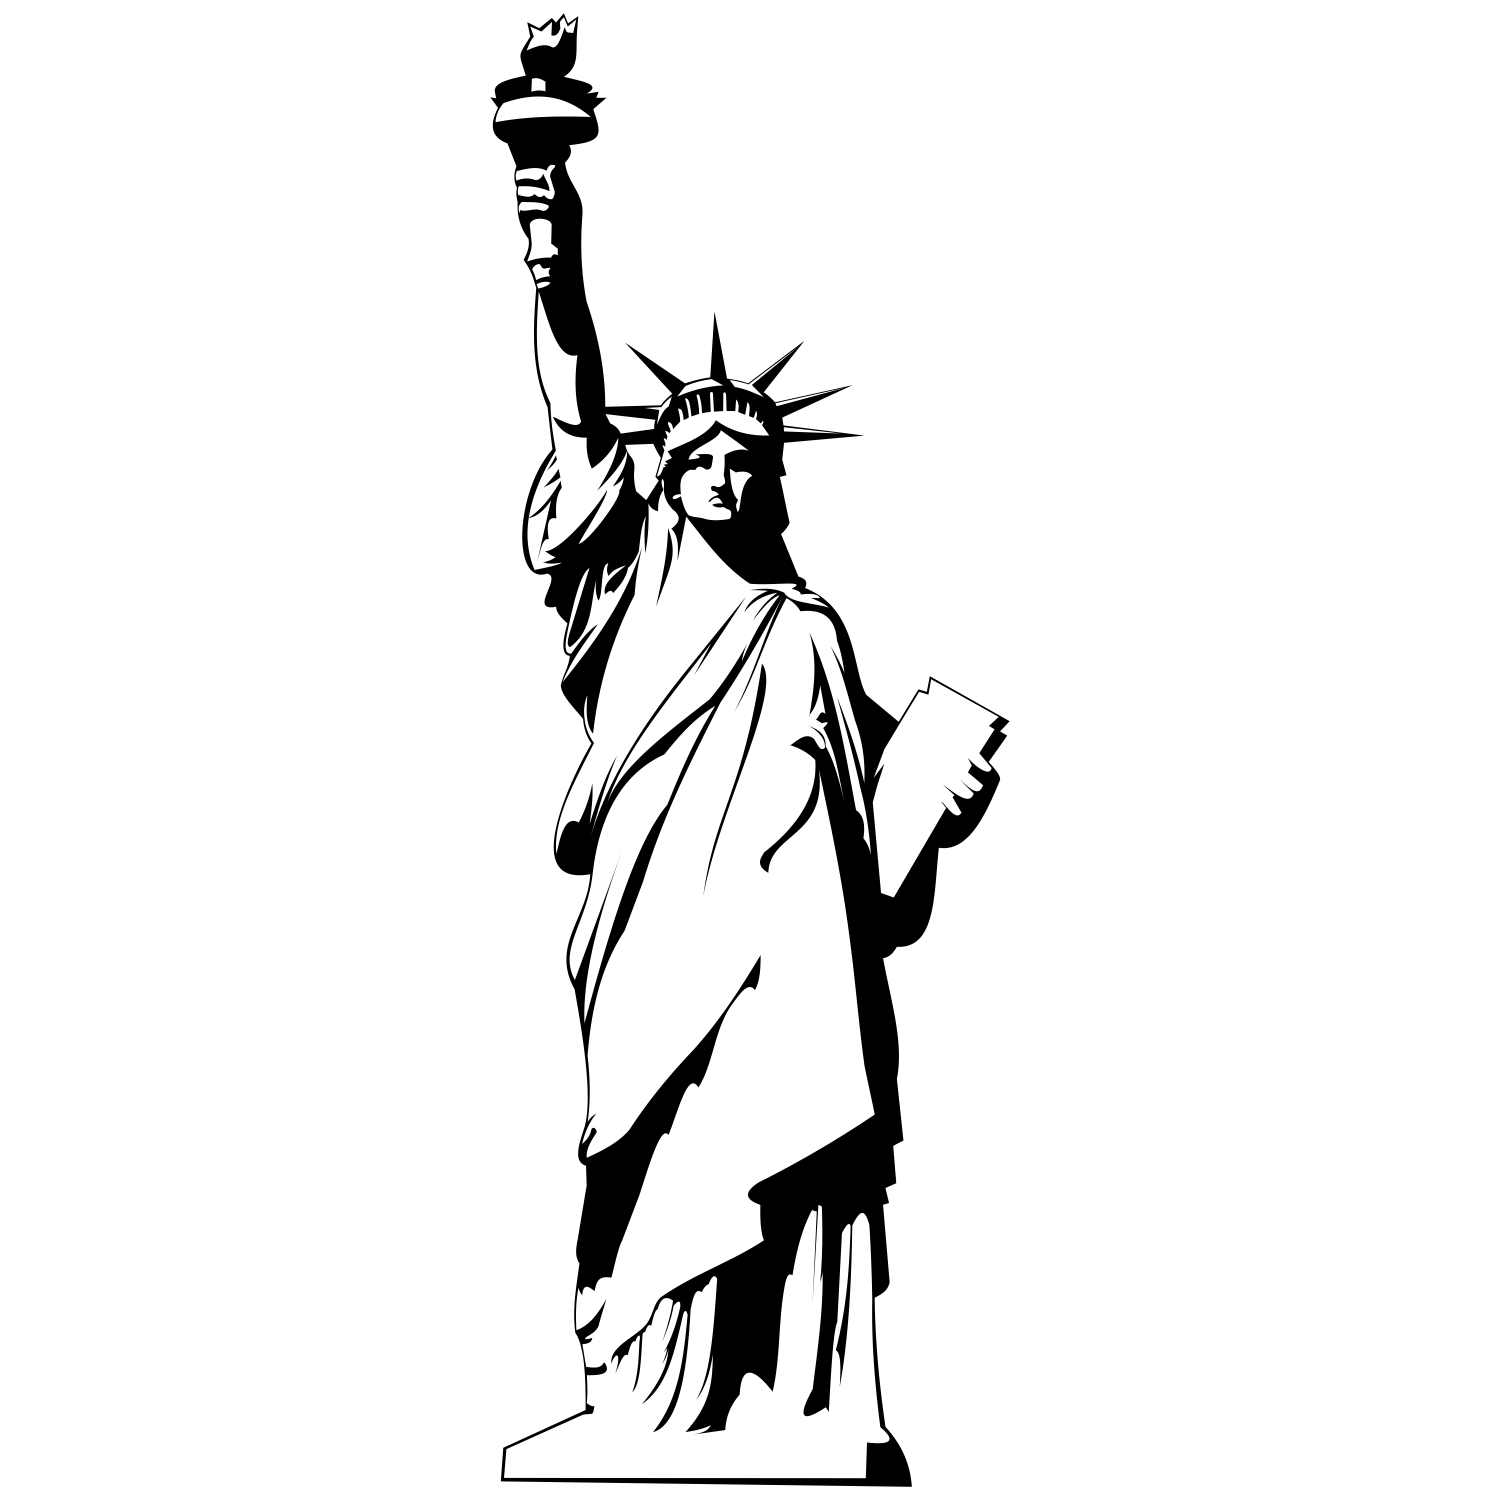 Statue of liberty clipart 5 » Clipart Station.